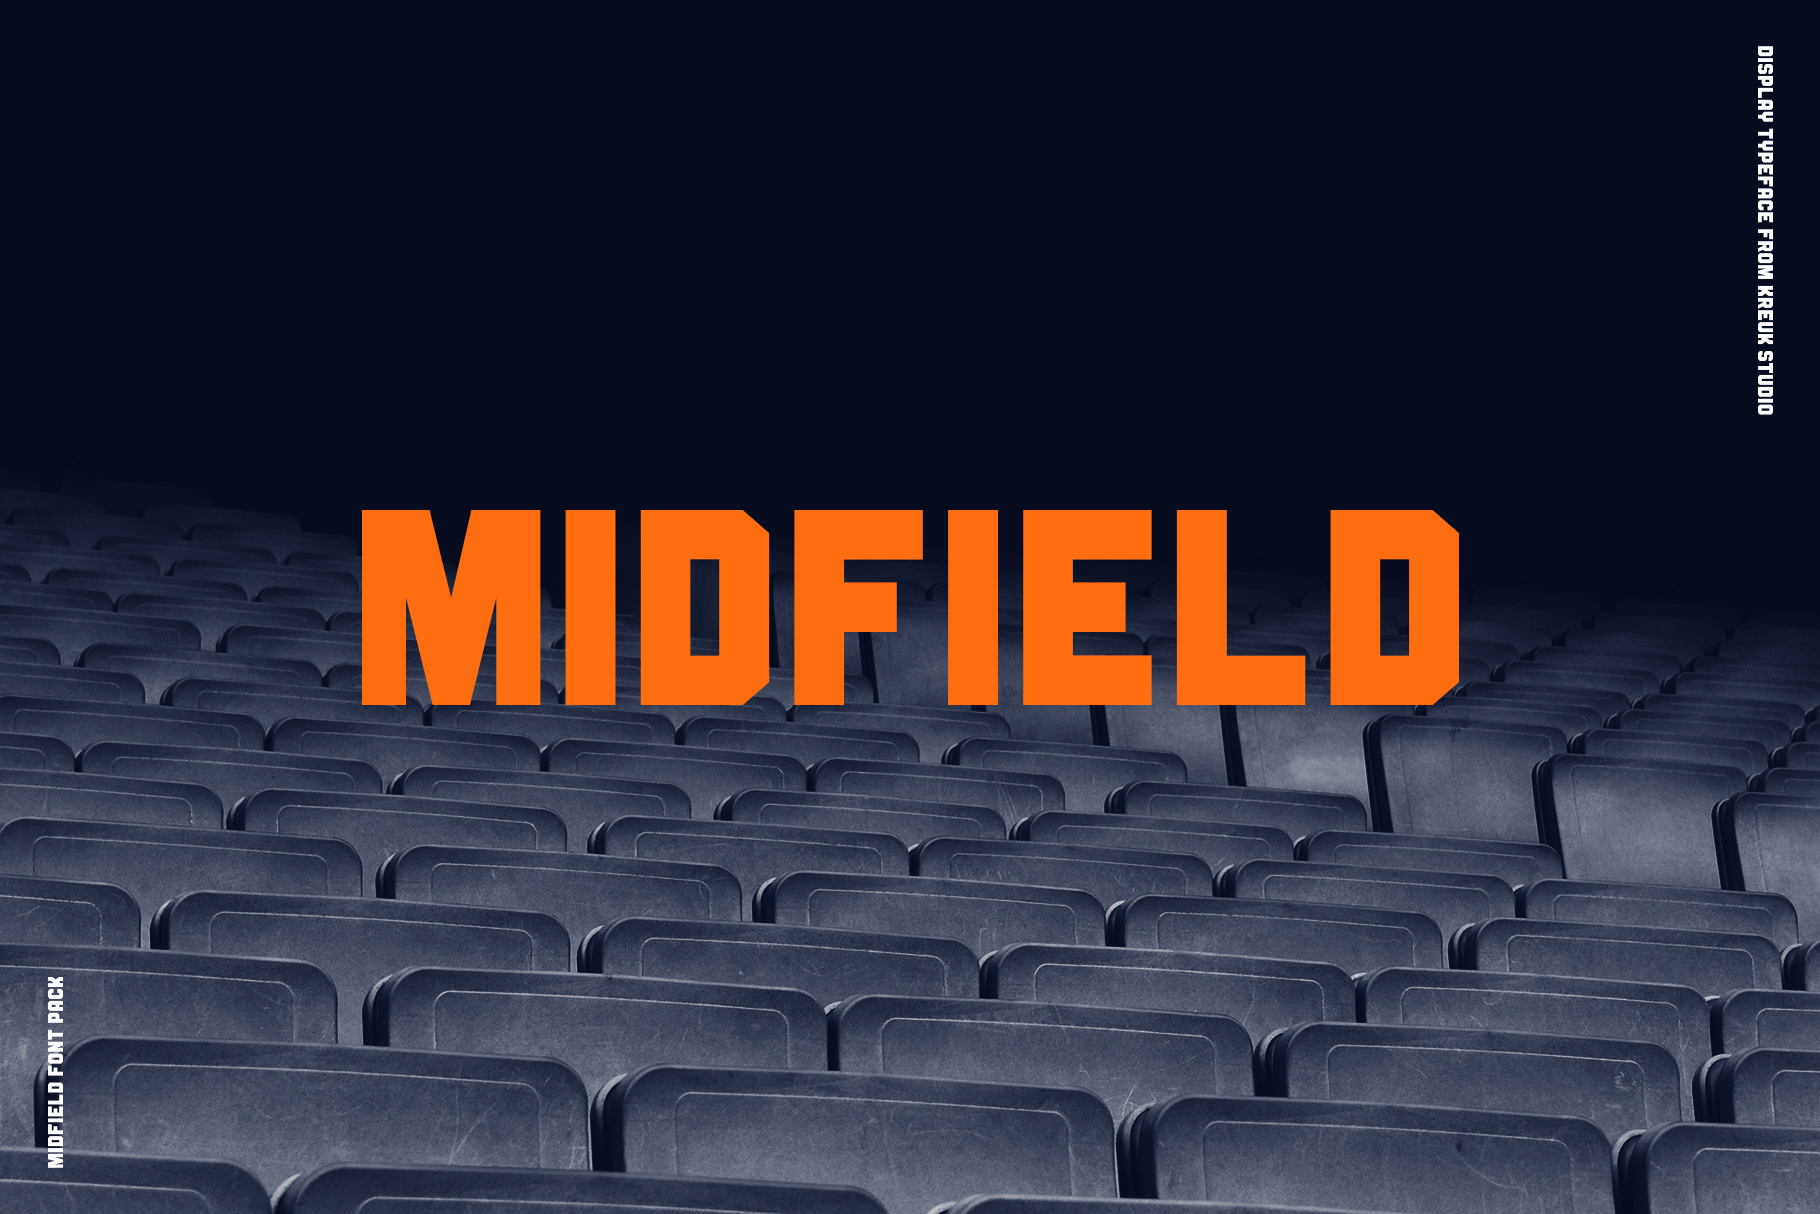 Midfield Display example image 1